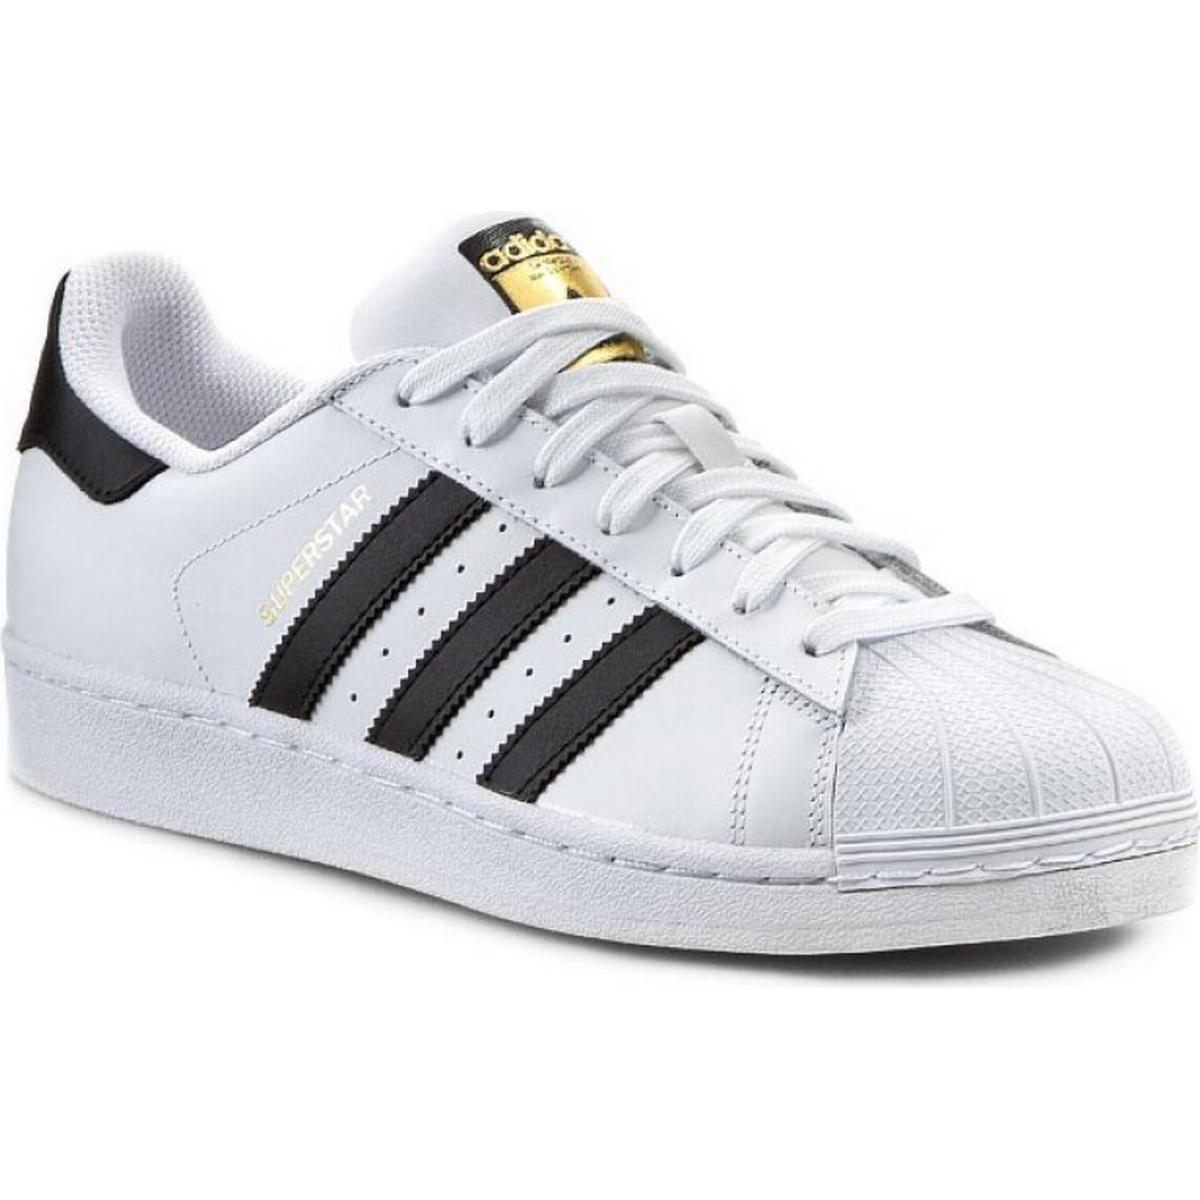 Adidas Superstar 2 White Navy Leather Mens Trainers Size 7